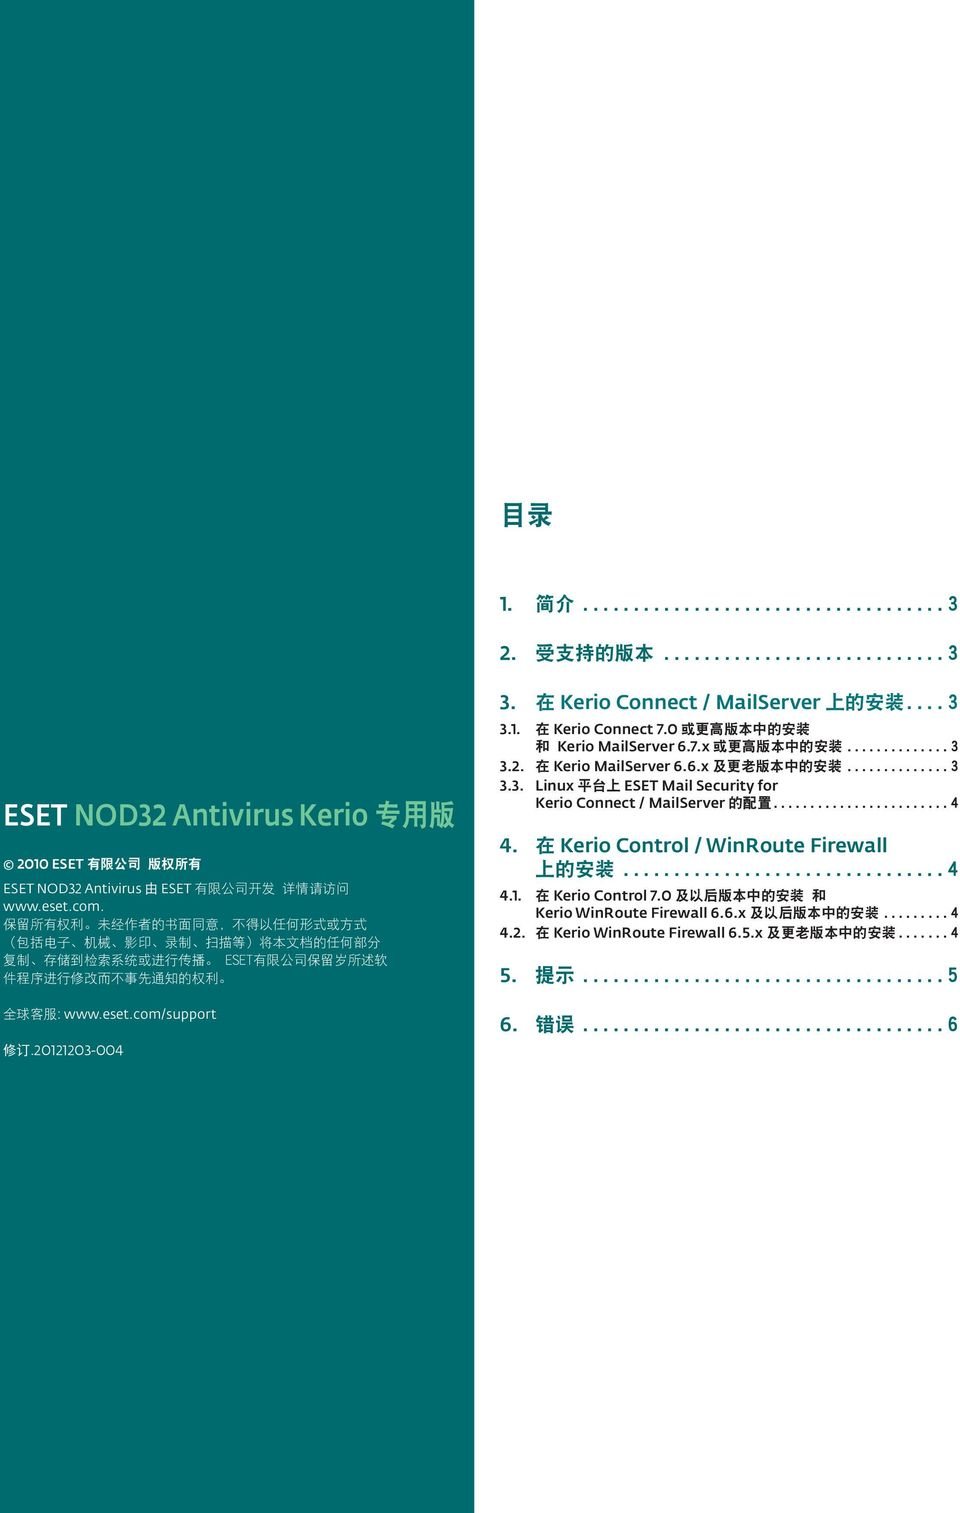 eset.com/support 修 订.20121203-004 3. 在 Kerio Connect / MailServer 上 的 安 装... 3 3.1. 在 Kerio Connect 7.0 或 更 高 版 本 中 的 安 装. 和 Kerio MailServer 6.7.x 或 更 高 版 本 中 的 安 装... 3 3.2. 在 Kerio MailServer 6.6.x 及 更 老 版 本 中 的 安 装.